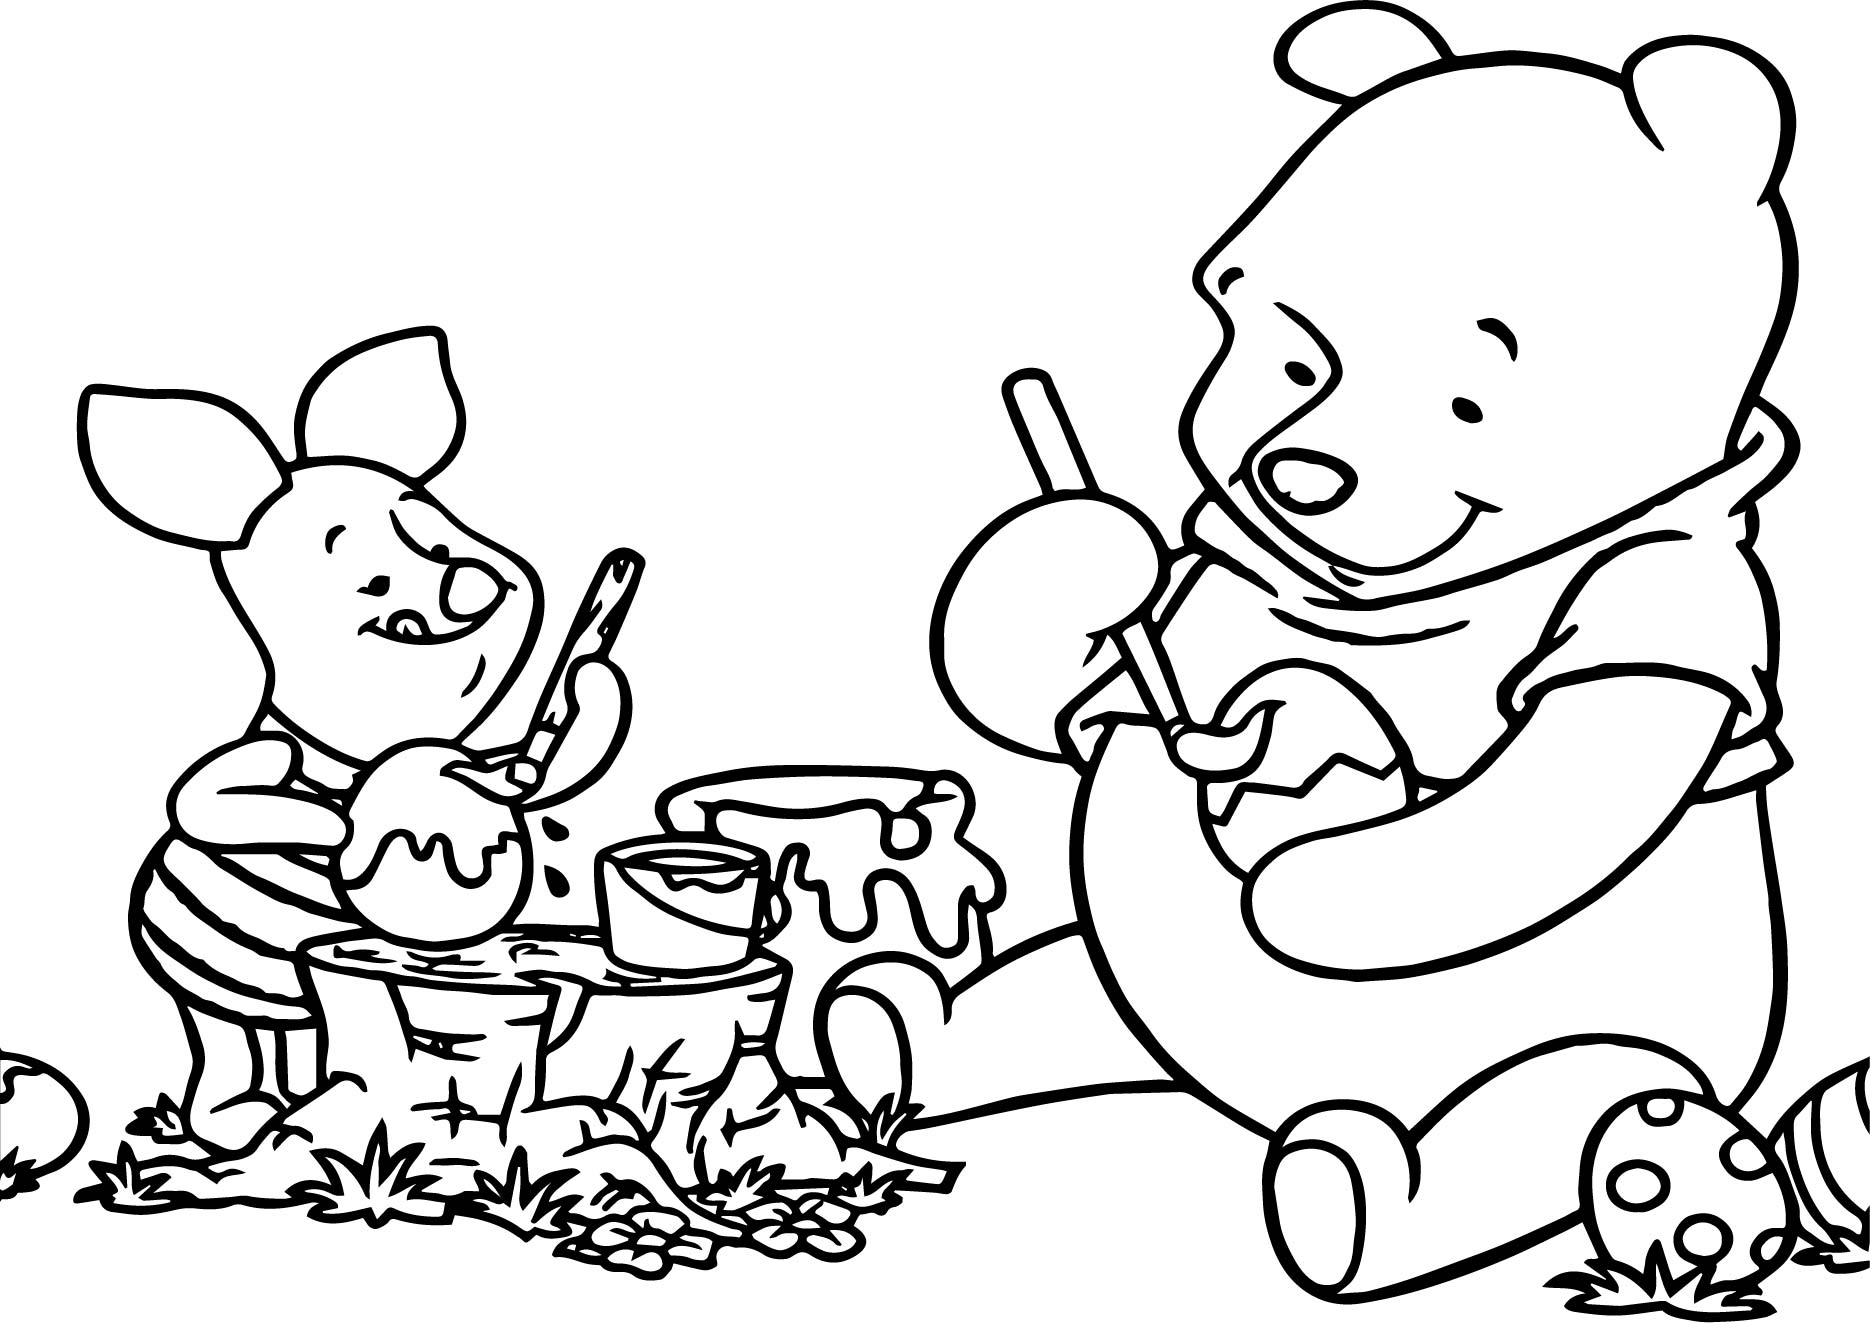 winnie the pooh easter coloring pages winnie the pooh painting easter egg coloring page easter the pages pooh coloring winnie